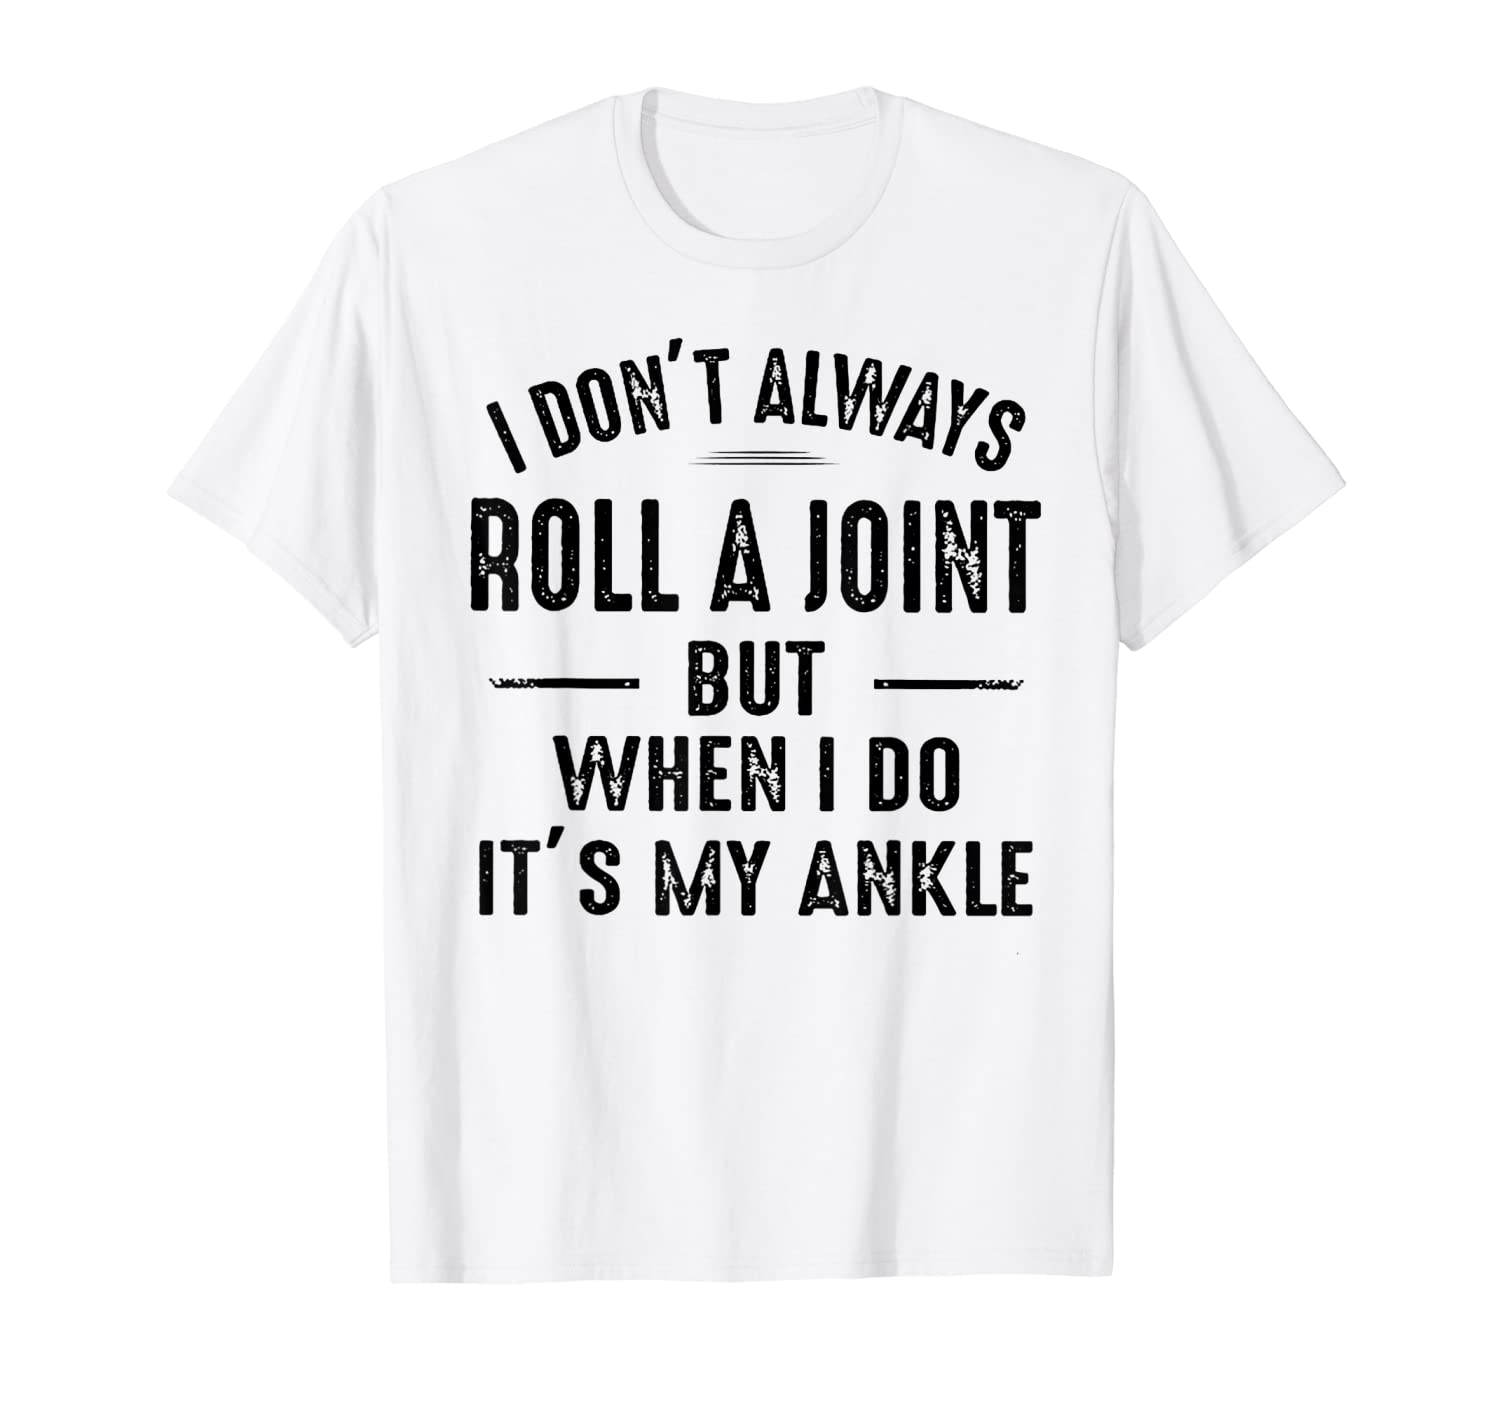 I Don't Always Roll A Joint But When I Do It's My Ankle T-Shirt